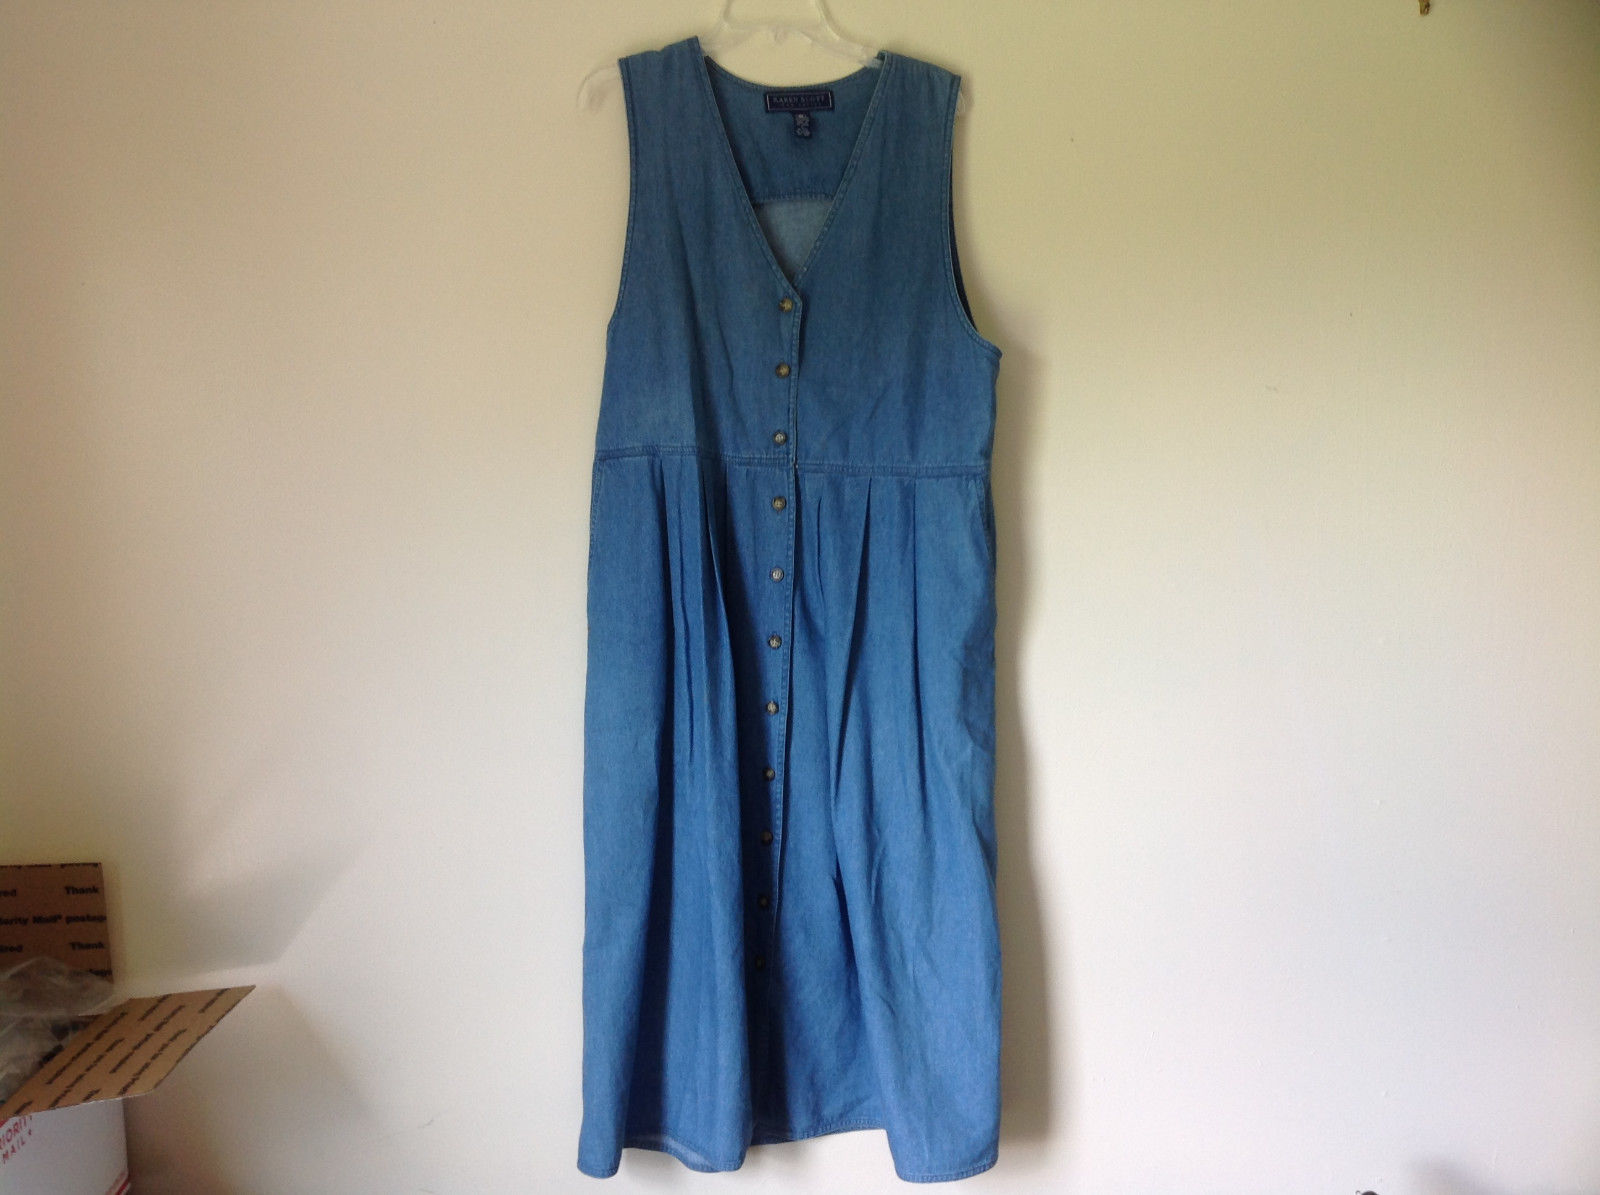 Jean Button Up Sleeveless Dress V Neckline Longer Length Karen Scott Size L